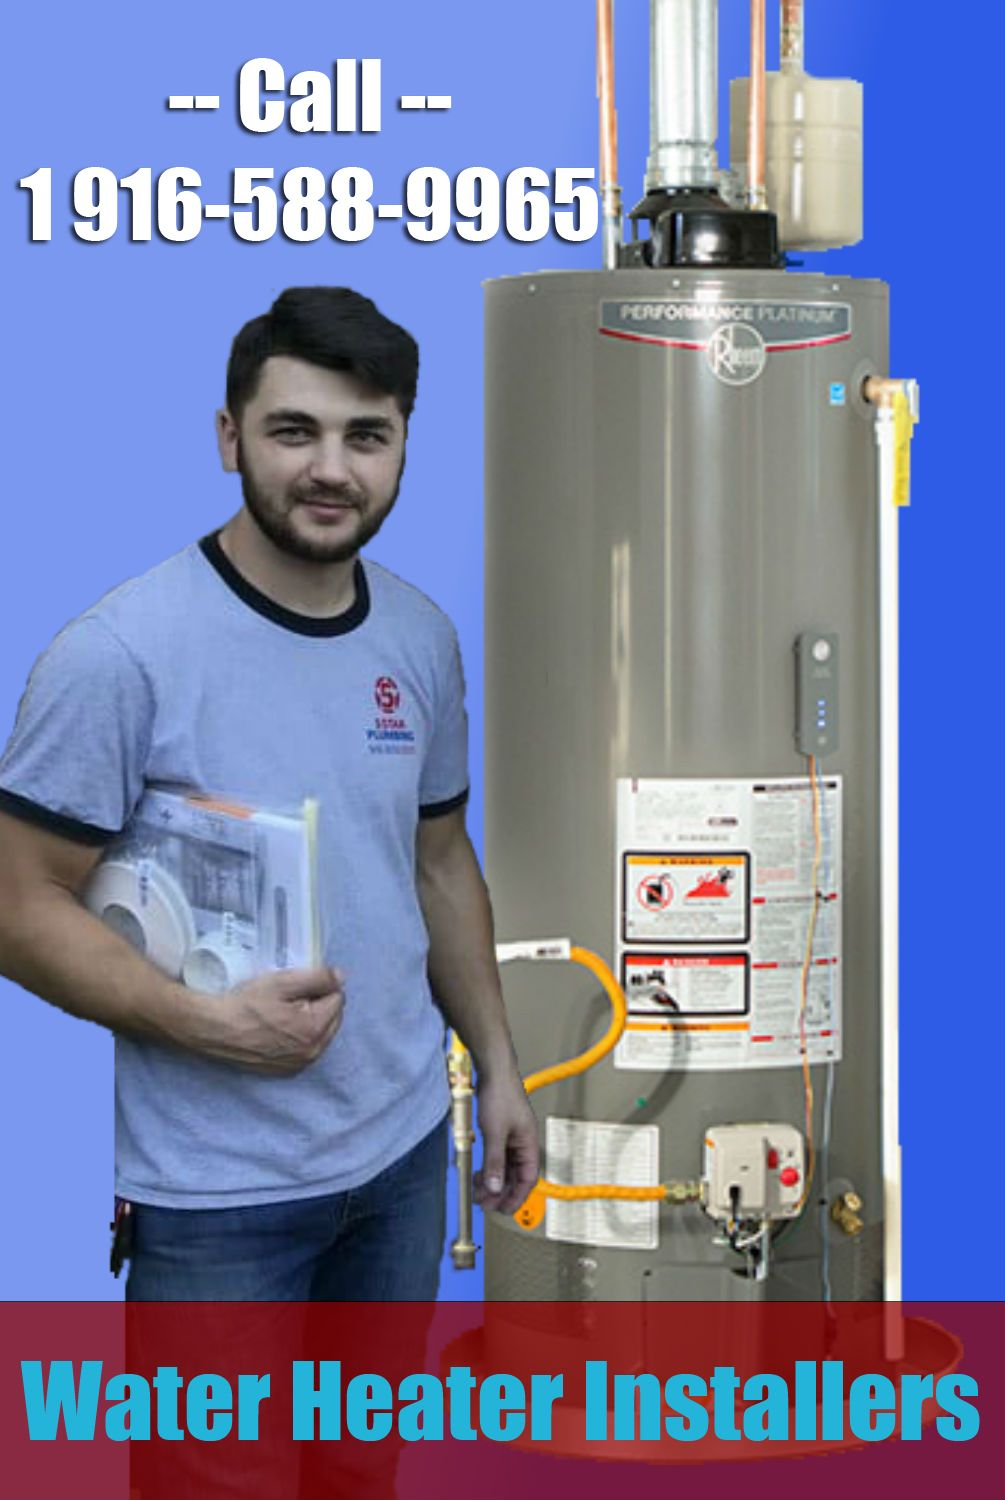 5 star plumbing inc is one of the best water heater